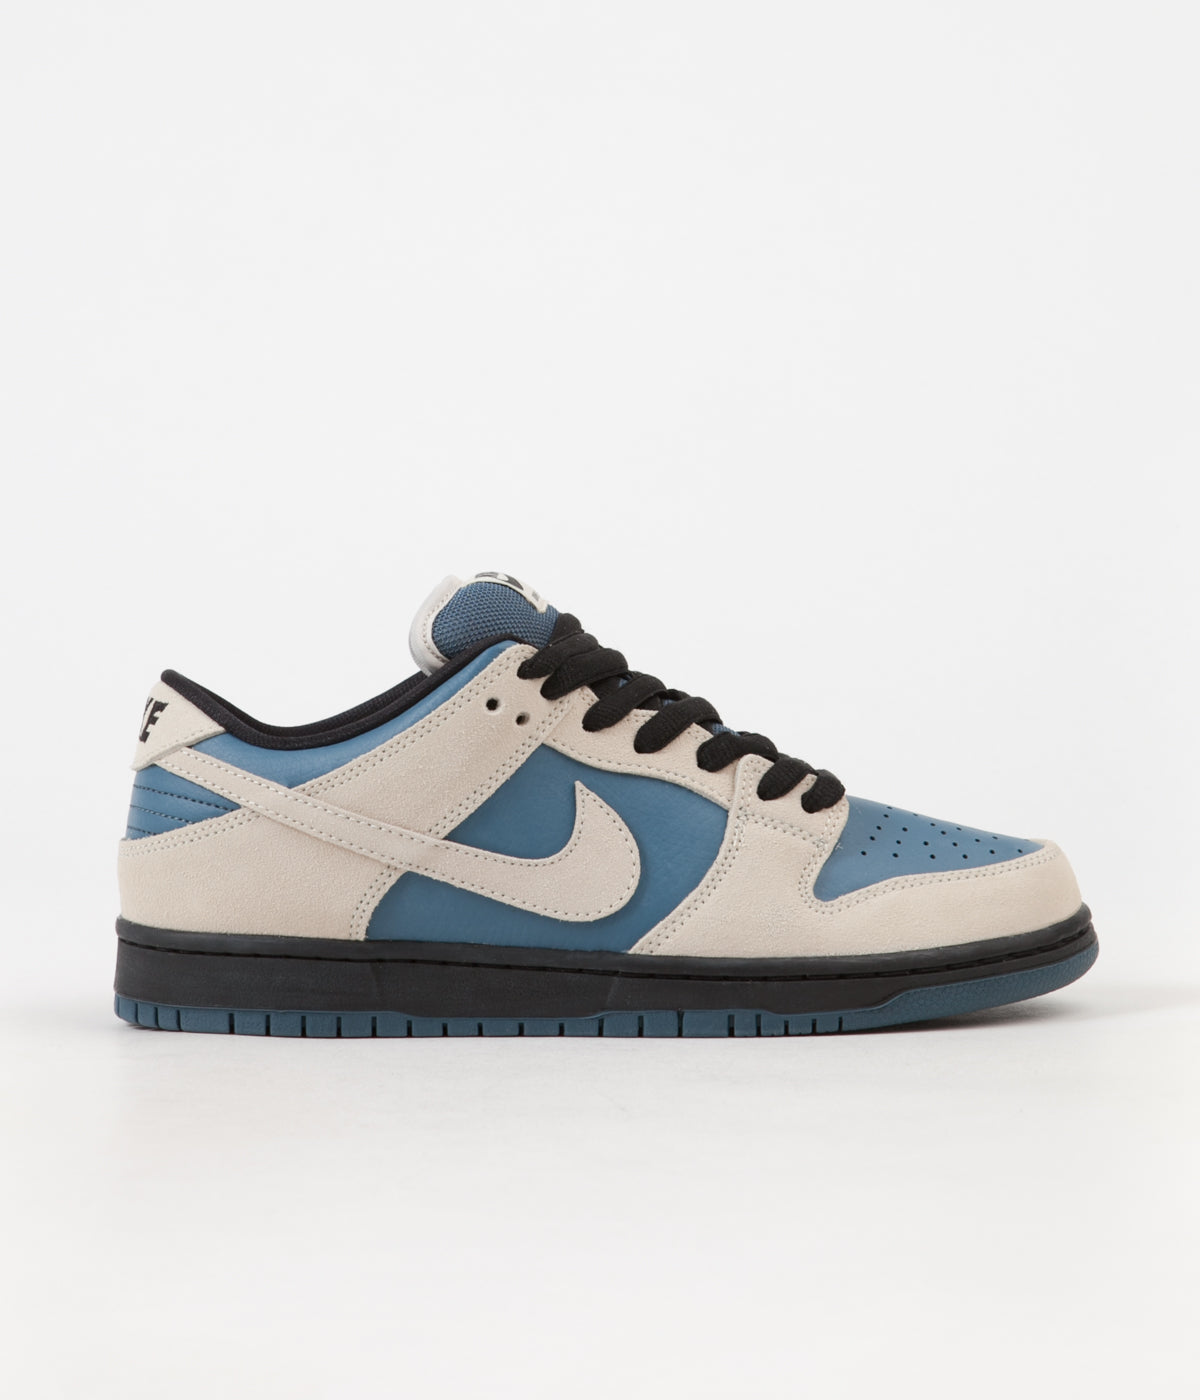 official photos b0787 f580d Nike SB Dunk Low Pro Shoes - Light Cream   Light Cream - Thunderstorm